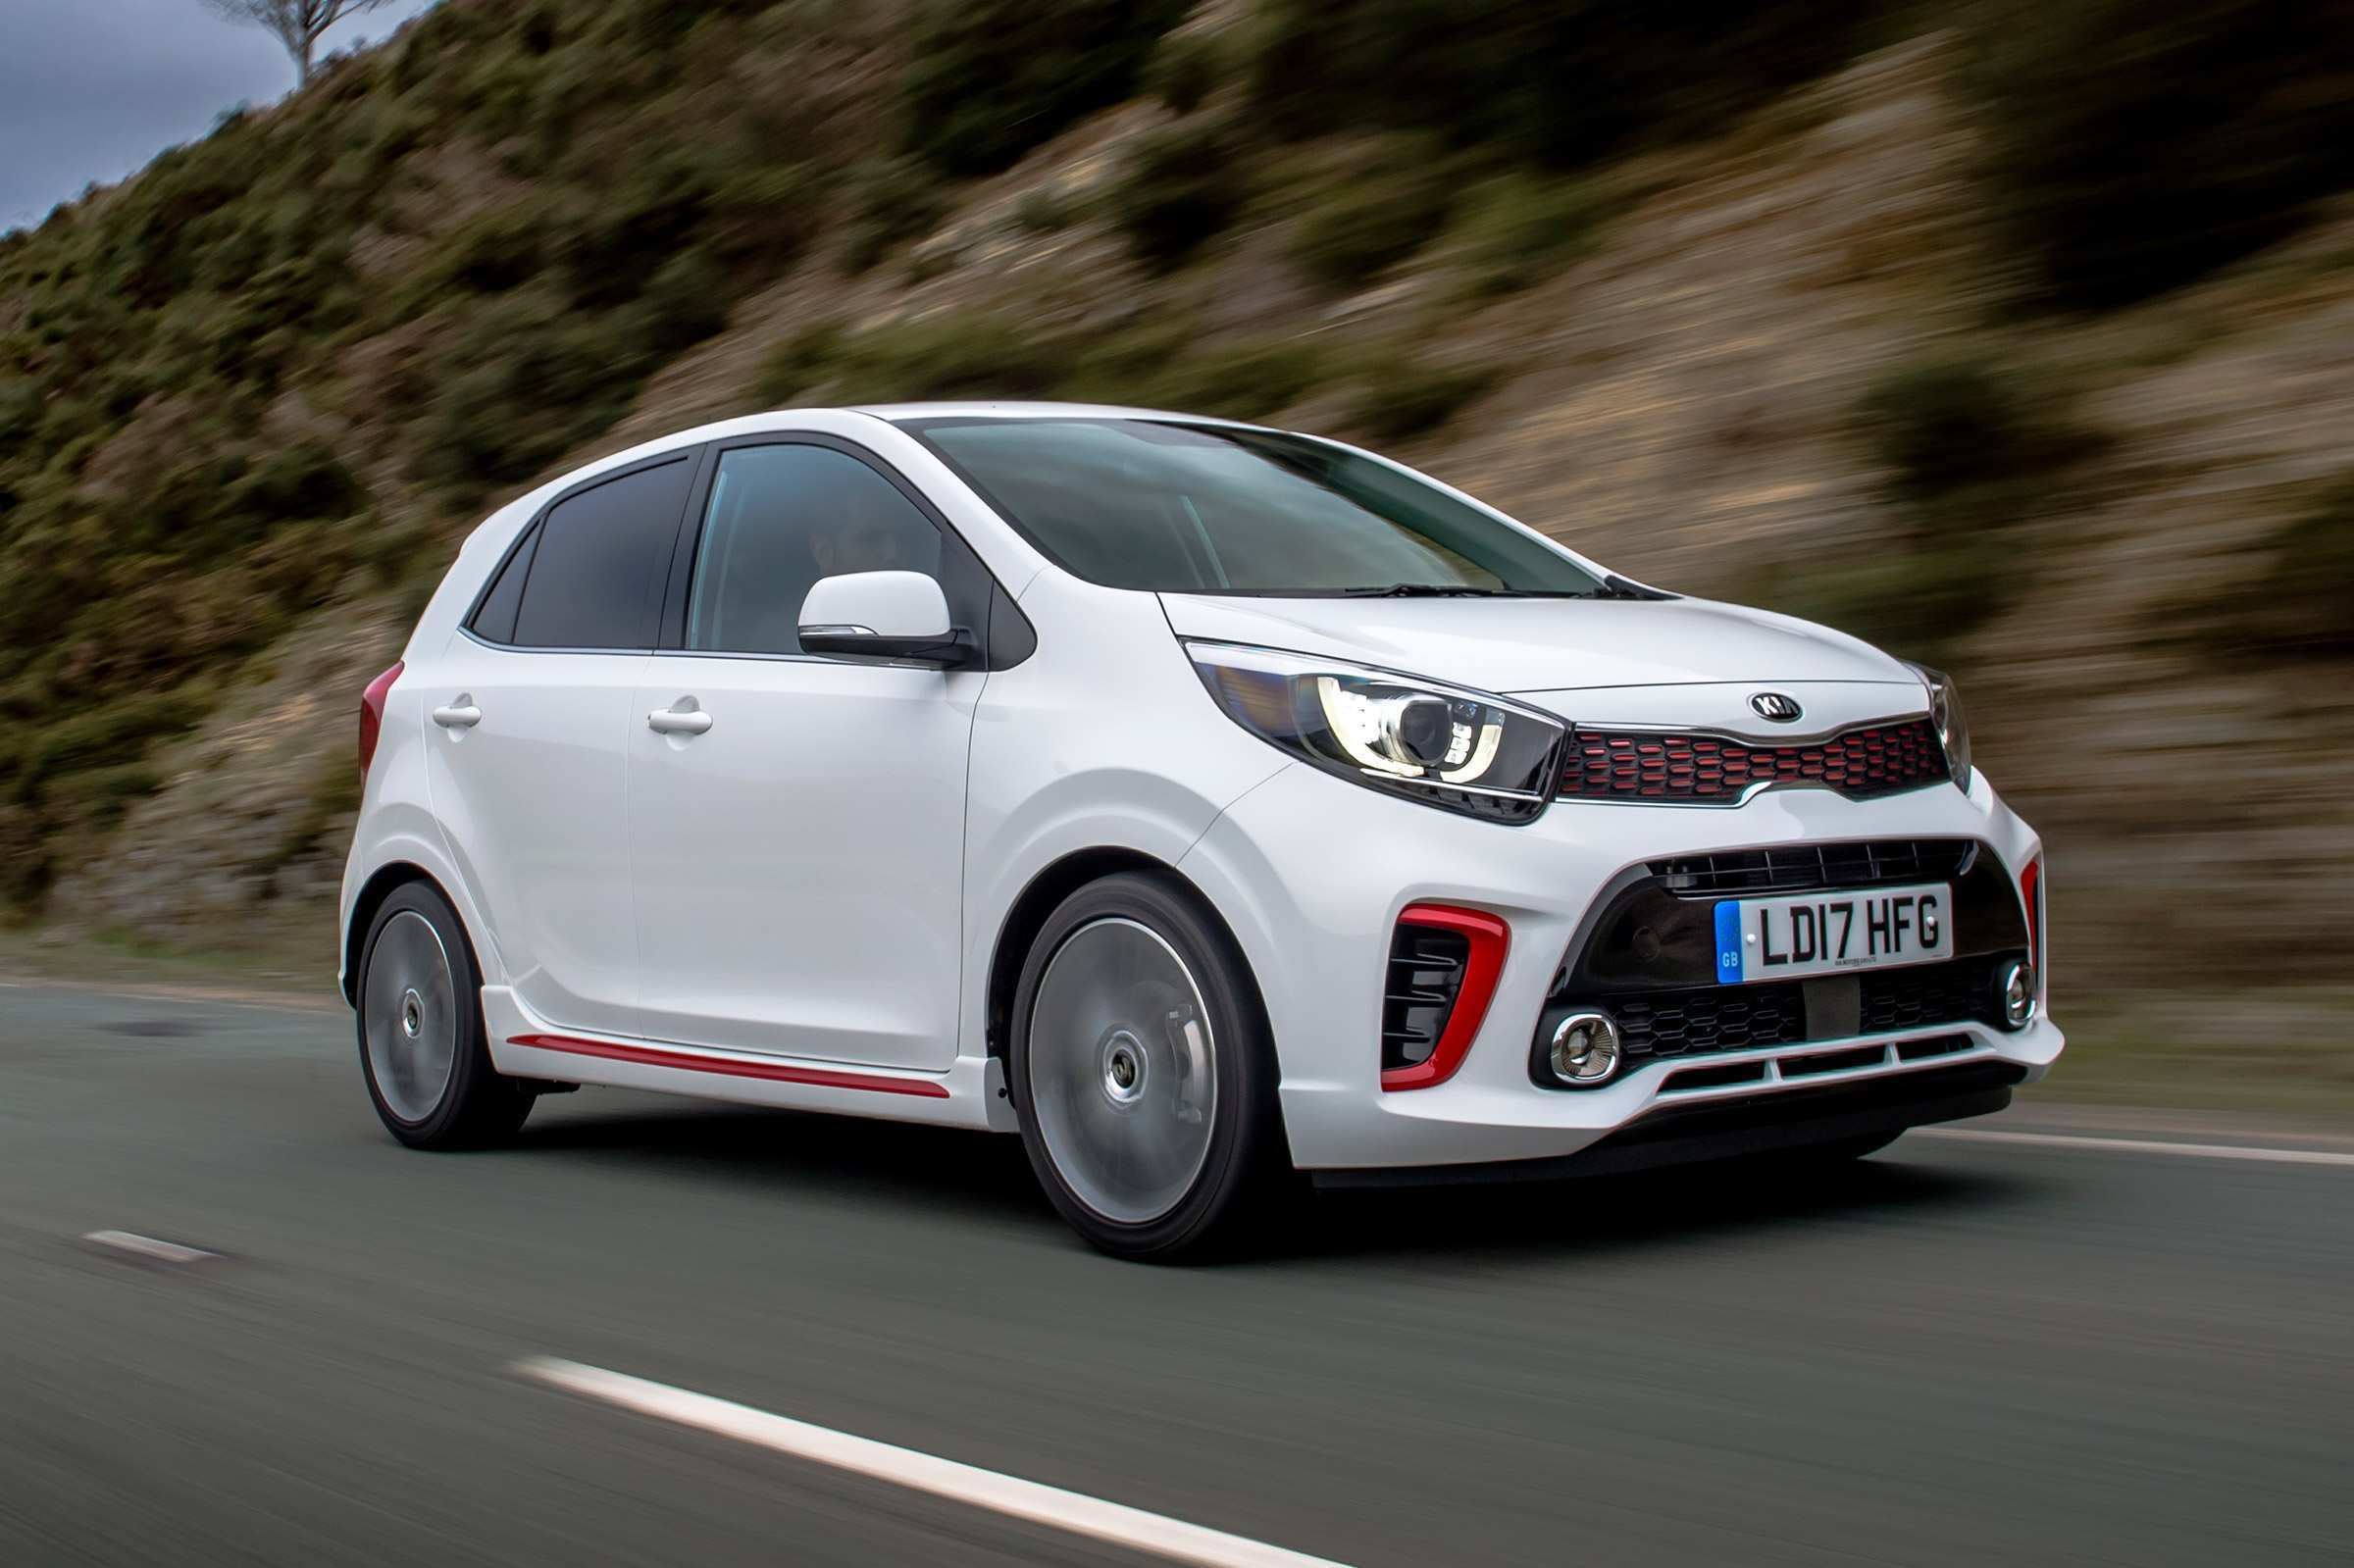 21 Great Kia Picanto Gt Line 2020 Price and Review for Kia Picanto Gt Line 2020